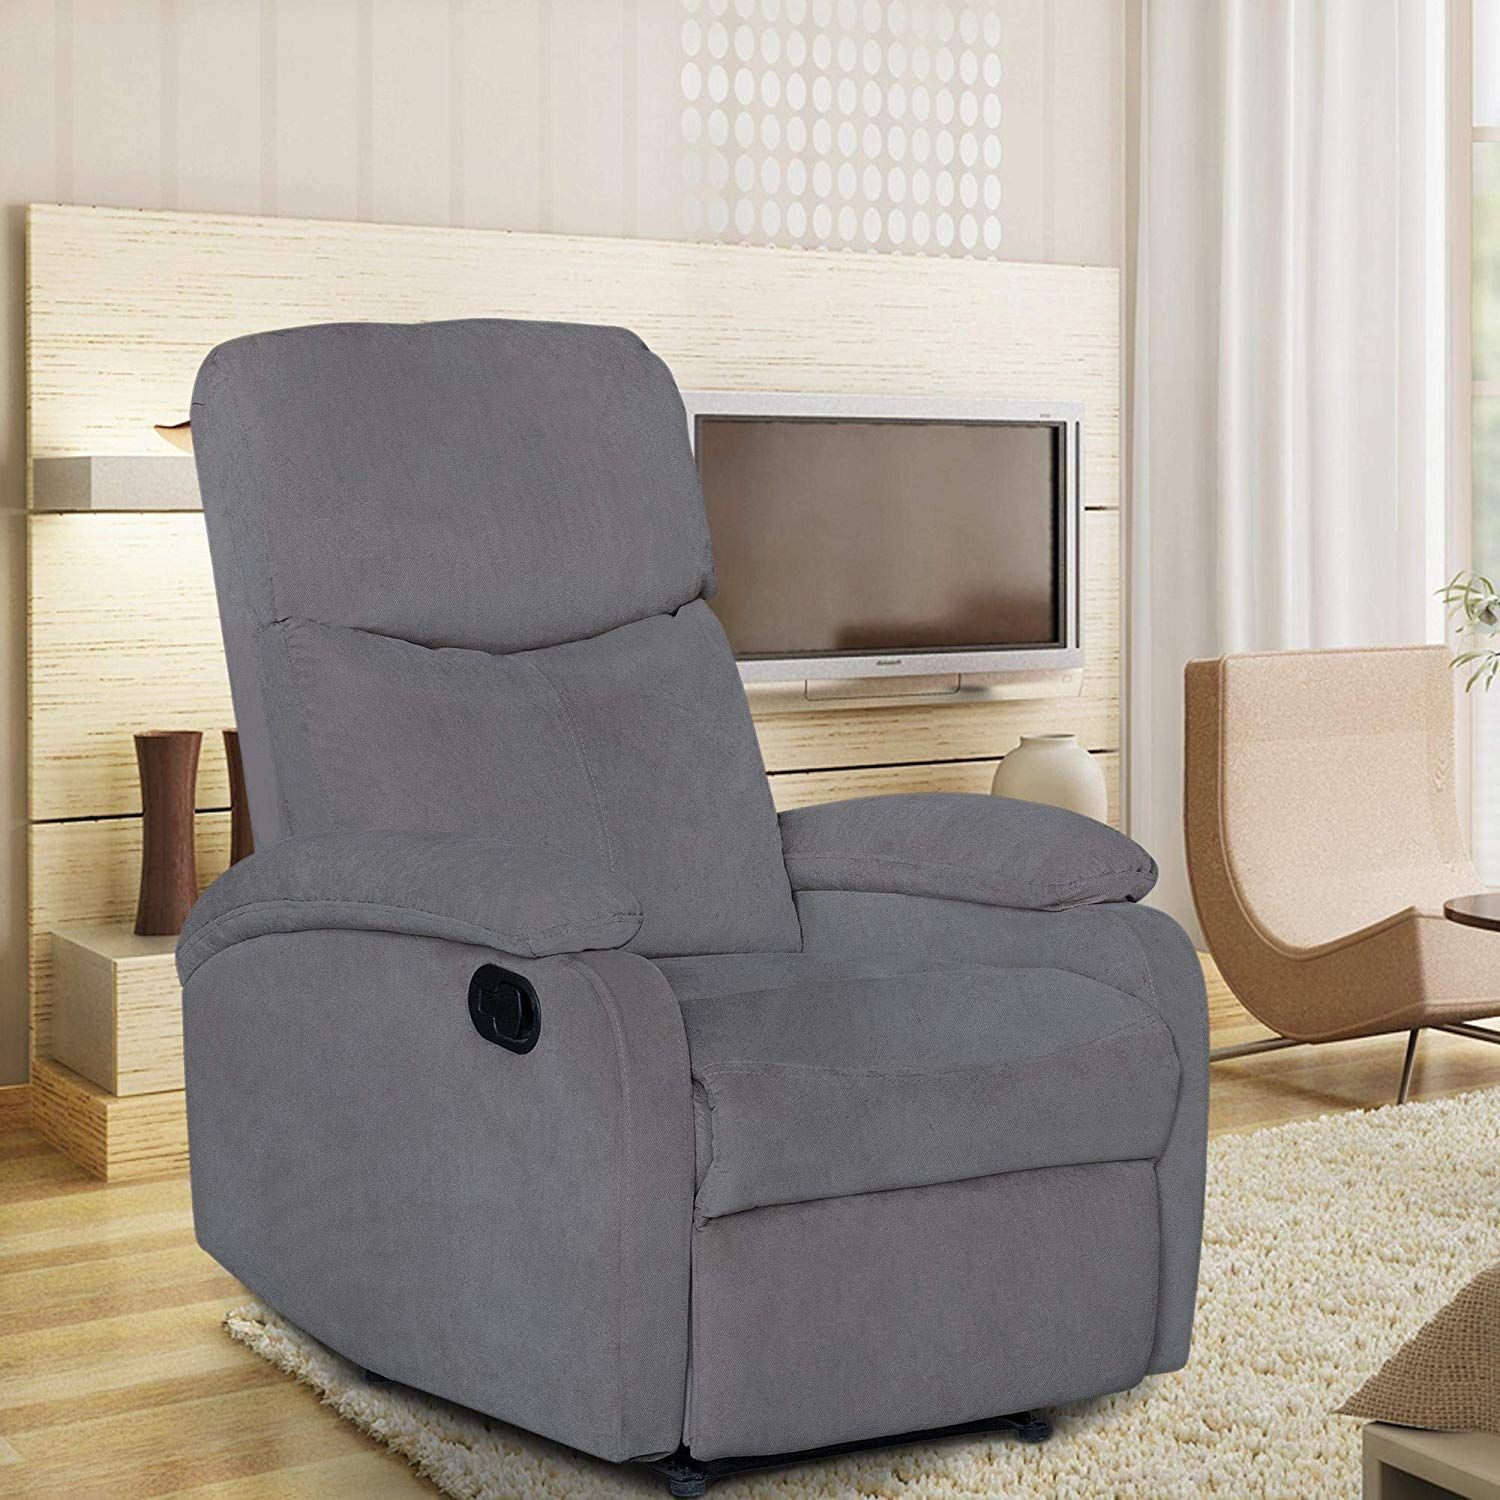 Windaze Manual Recliner Chair Single Living Room Office Sofa High